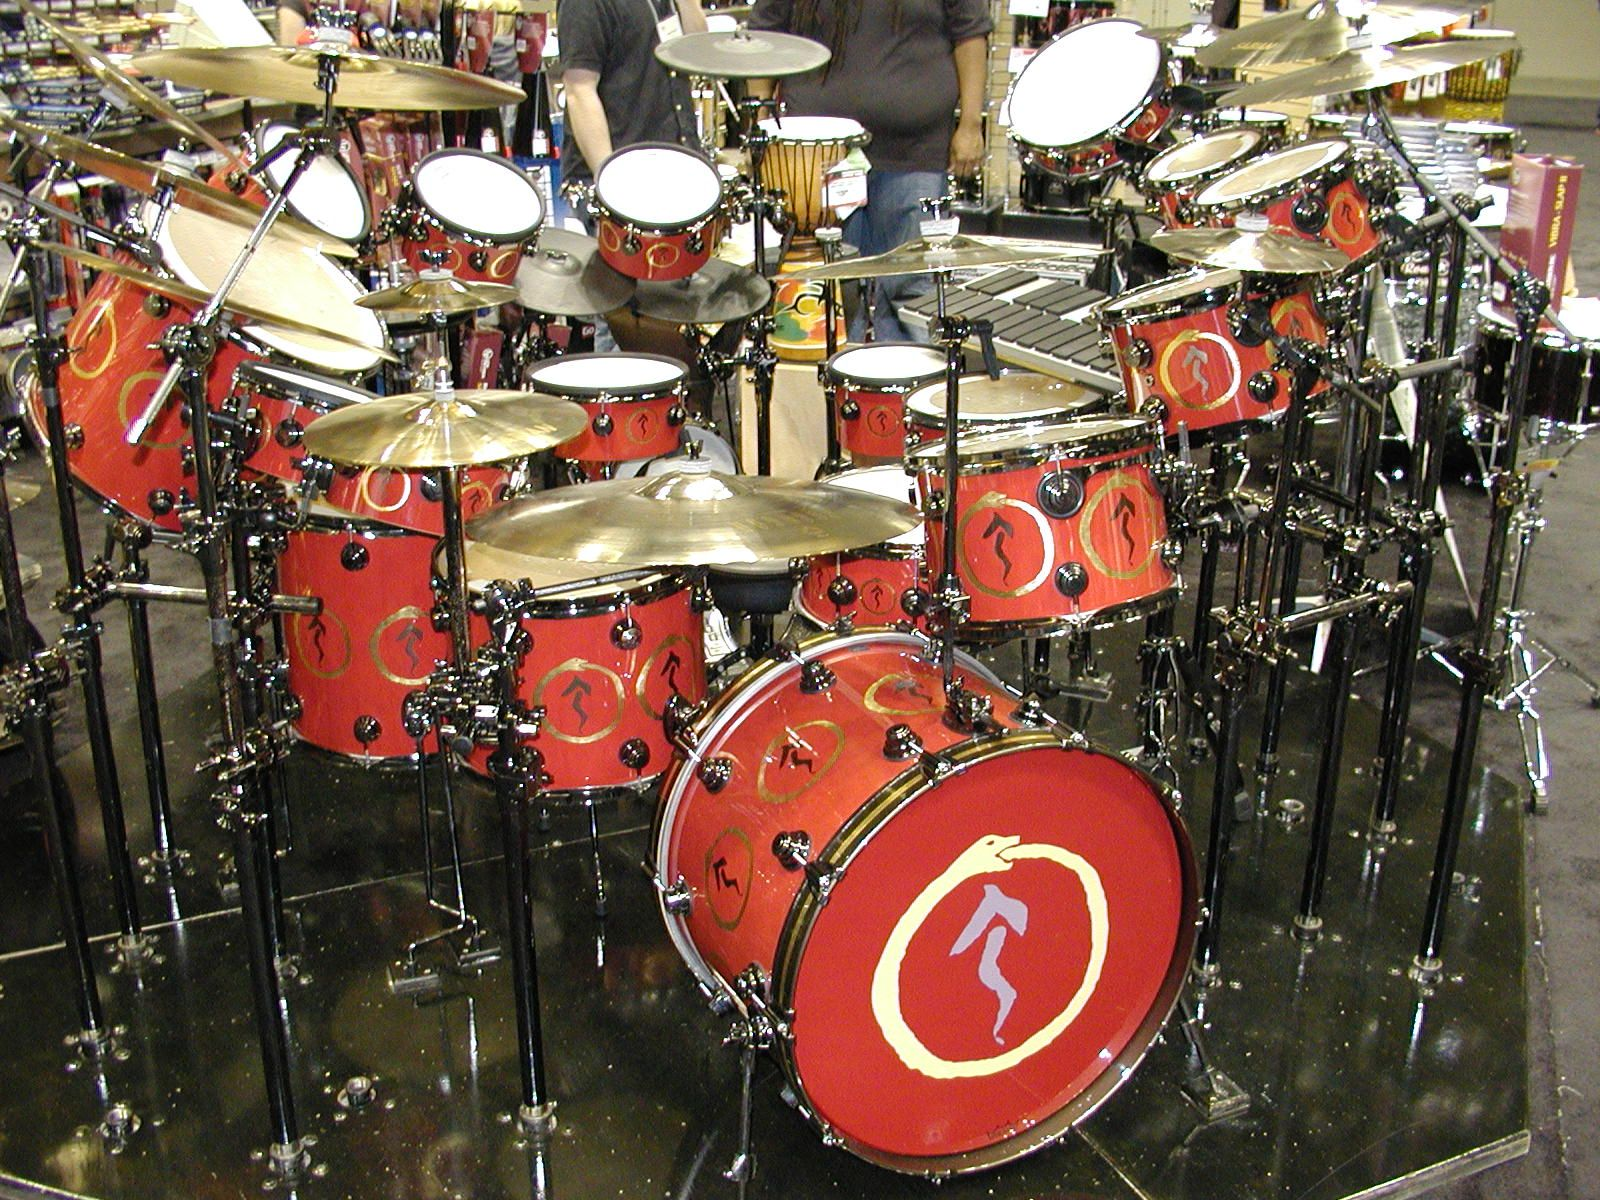 Neil Peart Drum Kit Note This Site Is Not Affiliated With Neil